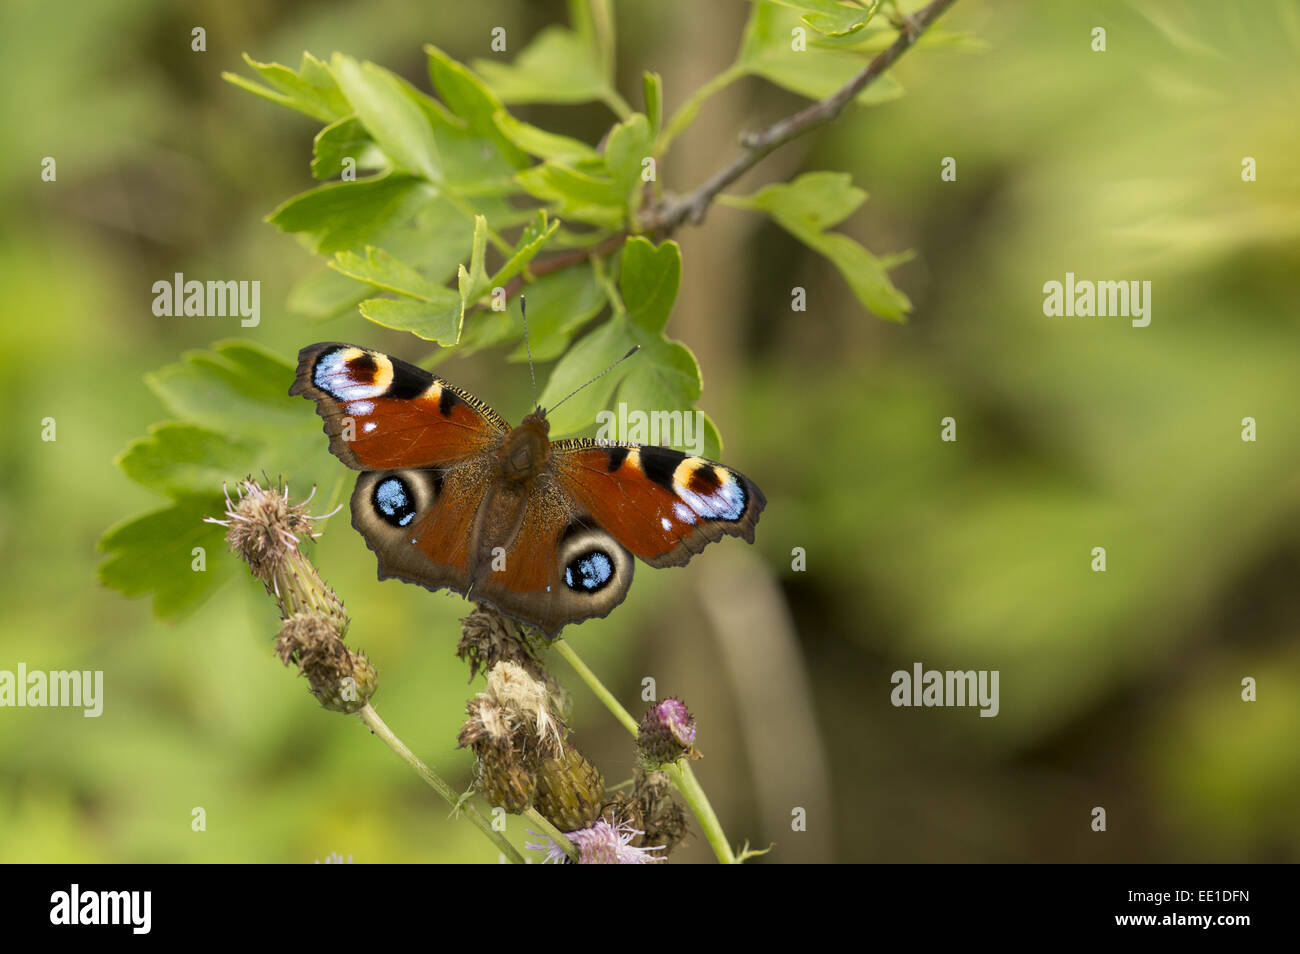 Peacock Butterfly (Inachis io) adult, resting on thistle flowerhead, Yorkshire, England, July - Stock Image